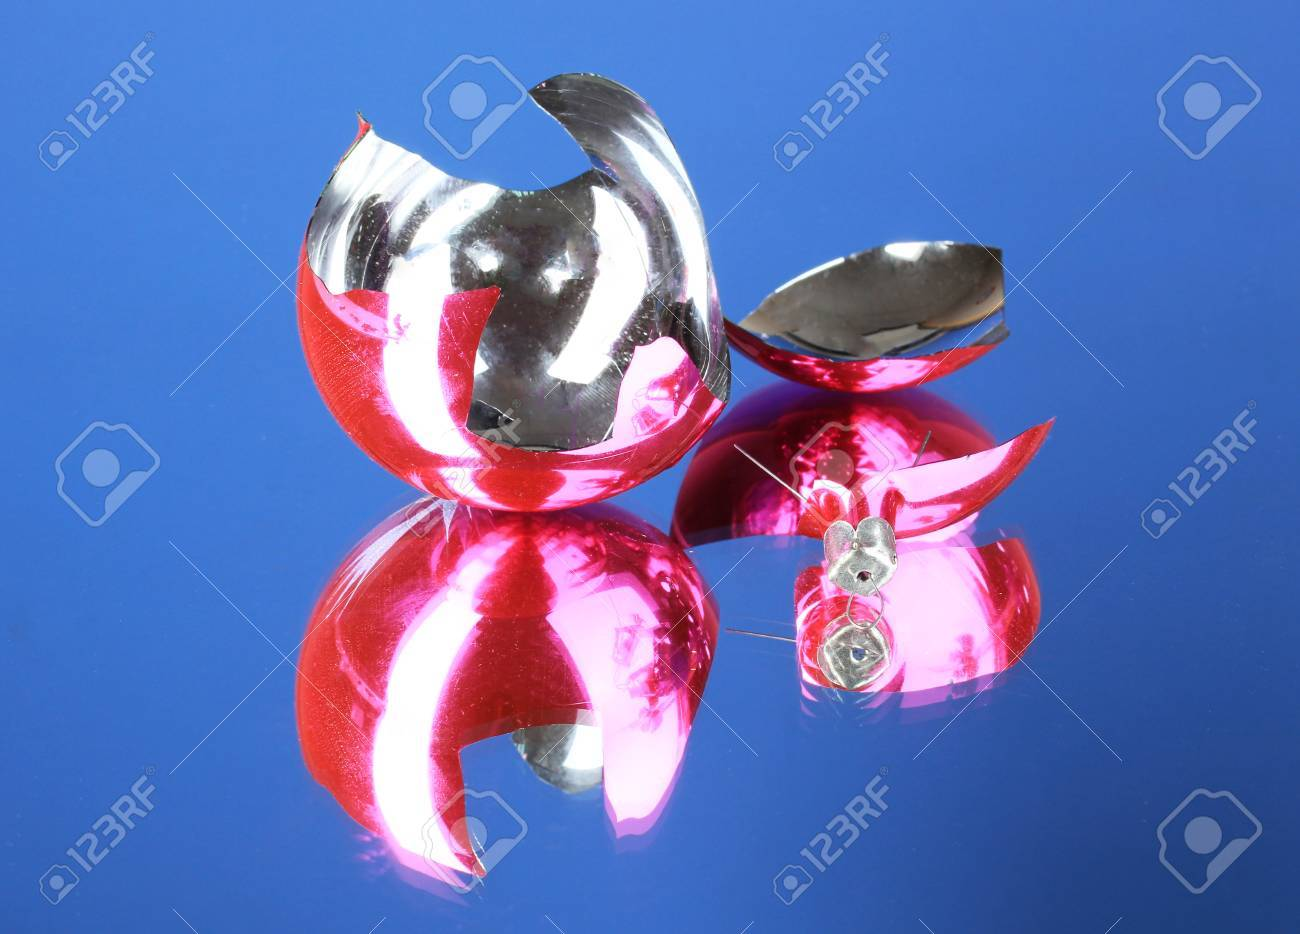 Broken Christmas Toy on blue background Stock Photo - 22858352